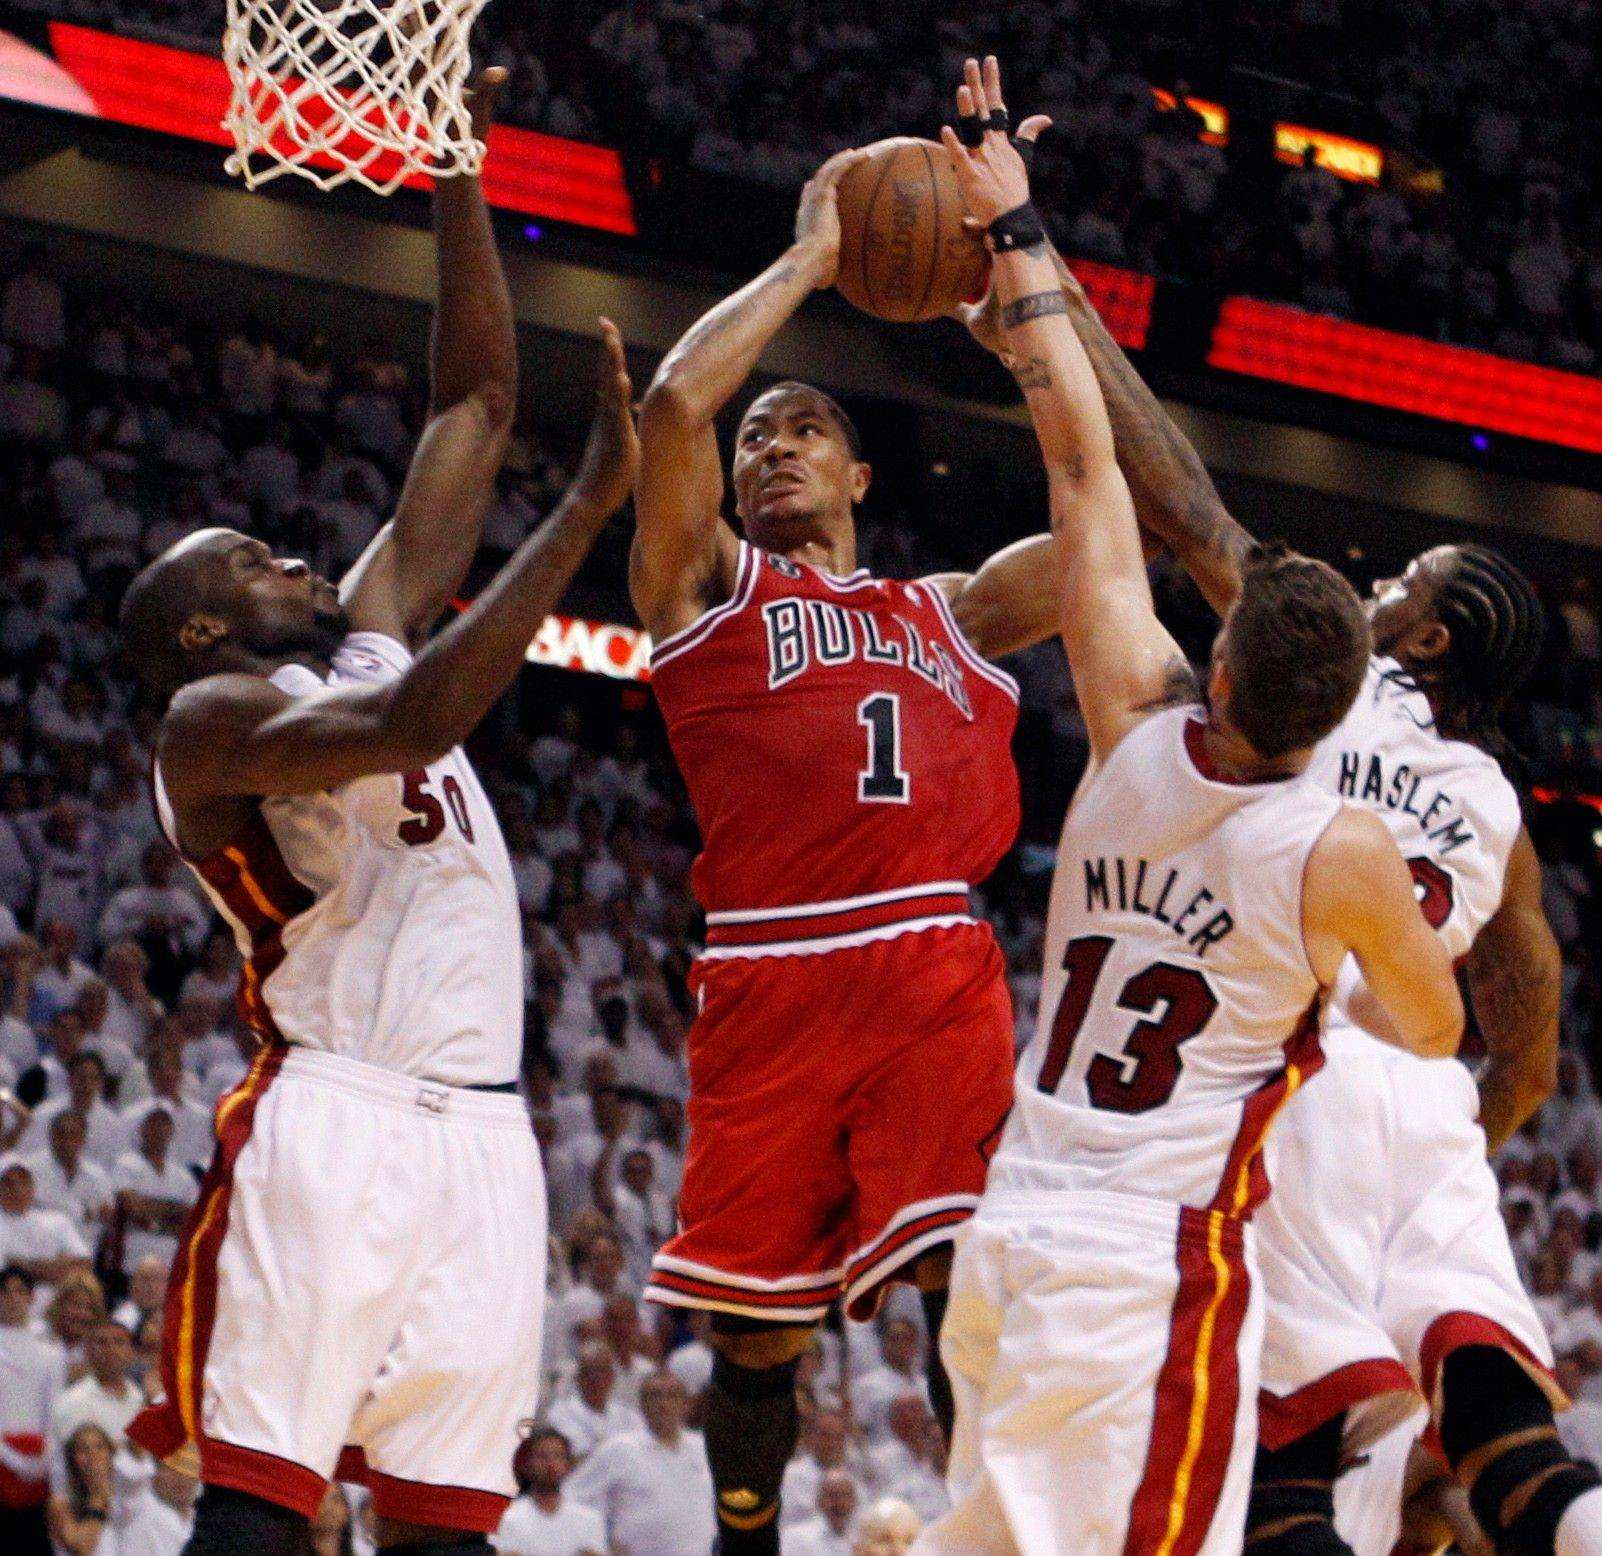 Miami Heat's Mike Miller (13), Udonis Haslem and Joel Anthony surrround Chicago Bulls' Derrick Rose (1) as he goes for a basket during the second half of Game 4 of the NBA Eastern Conference finals basketball series in Miami, Tuesday, May 24, 2011.